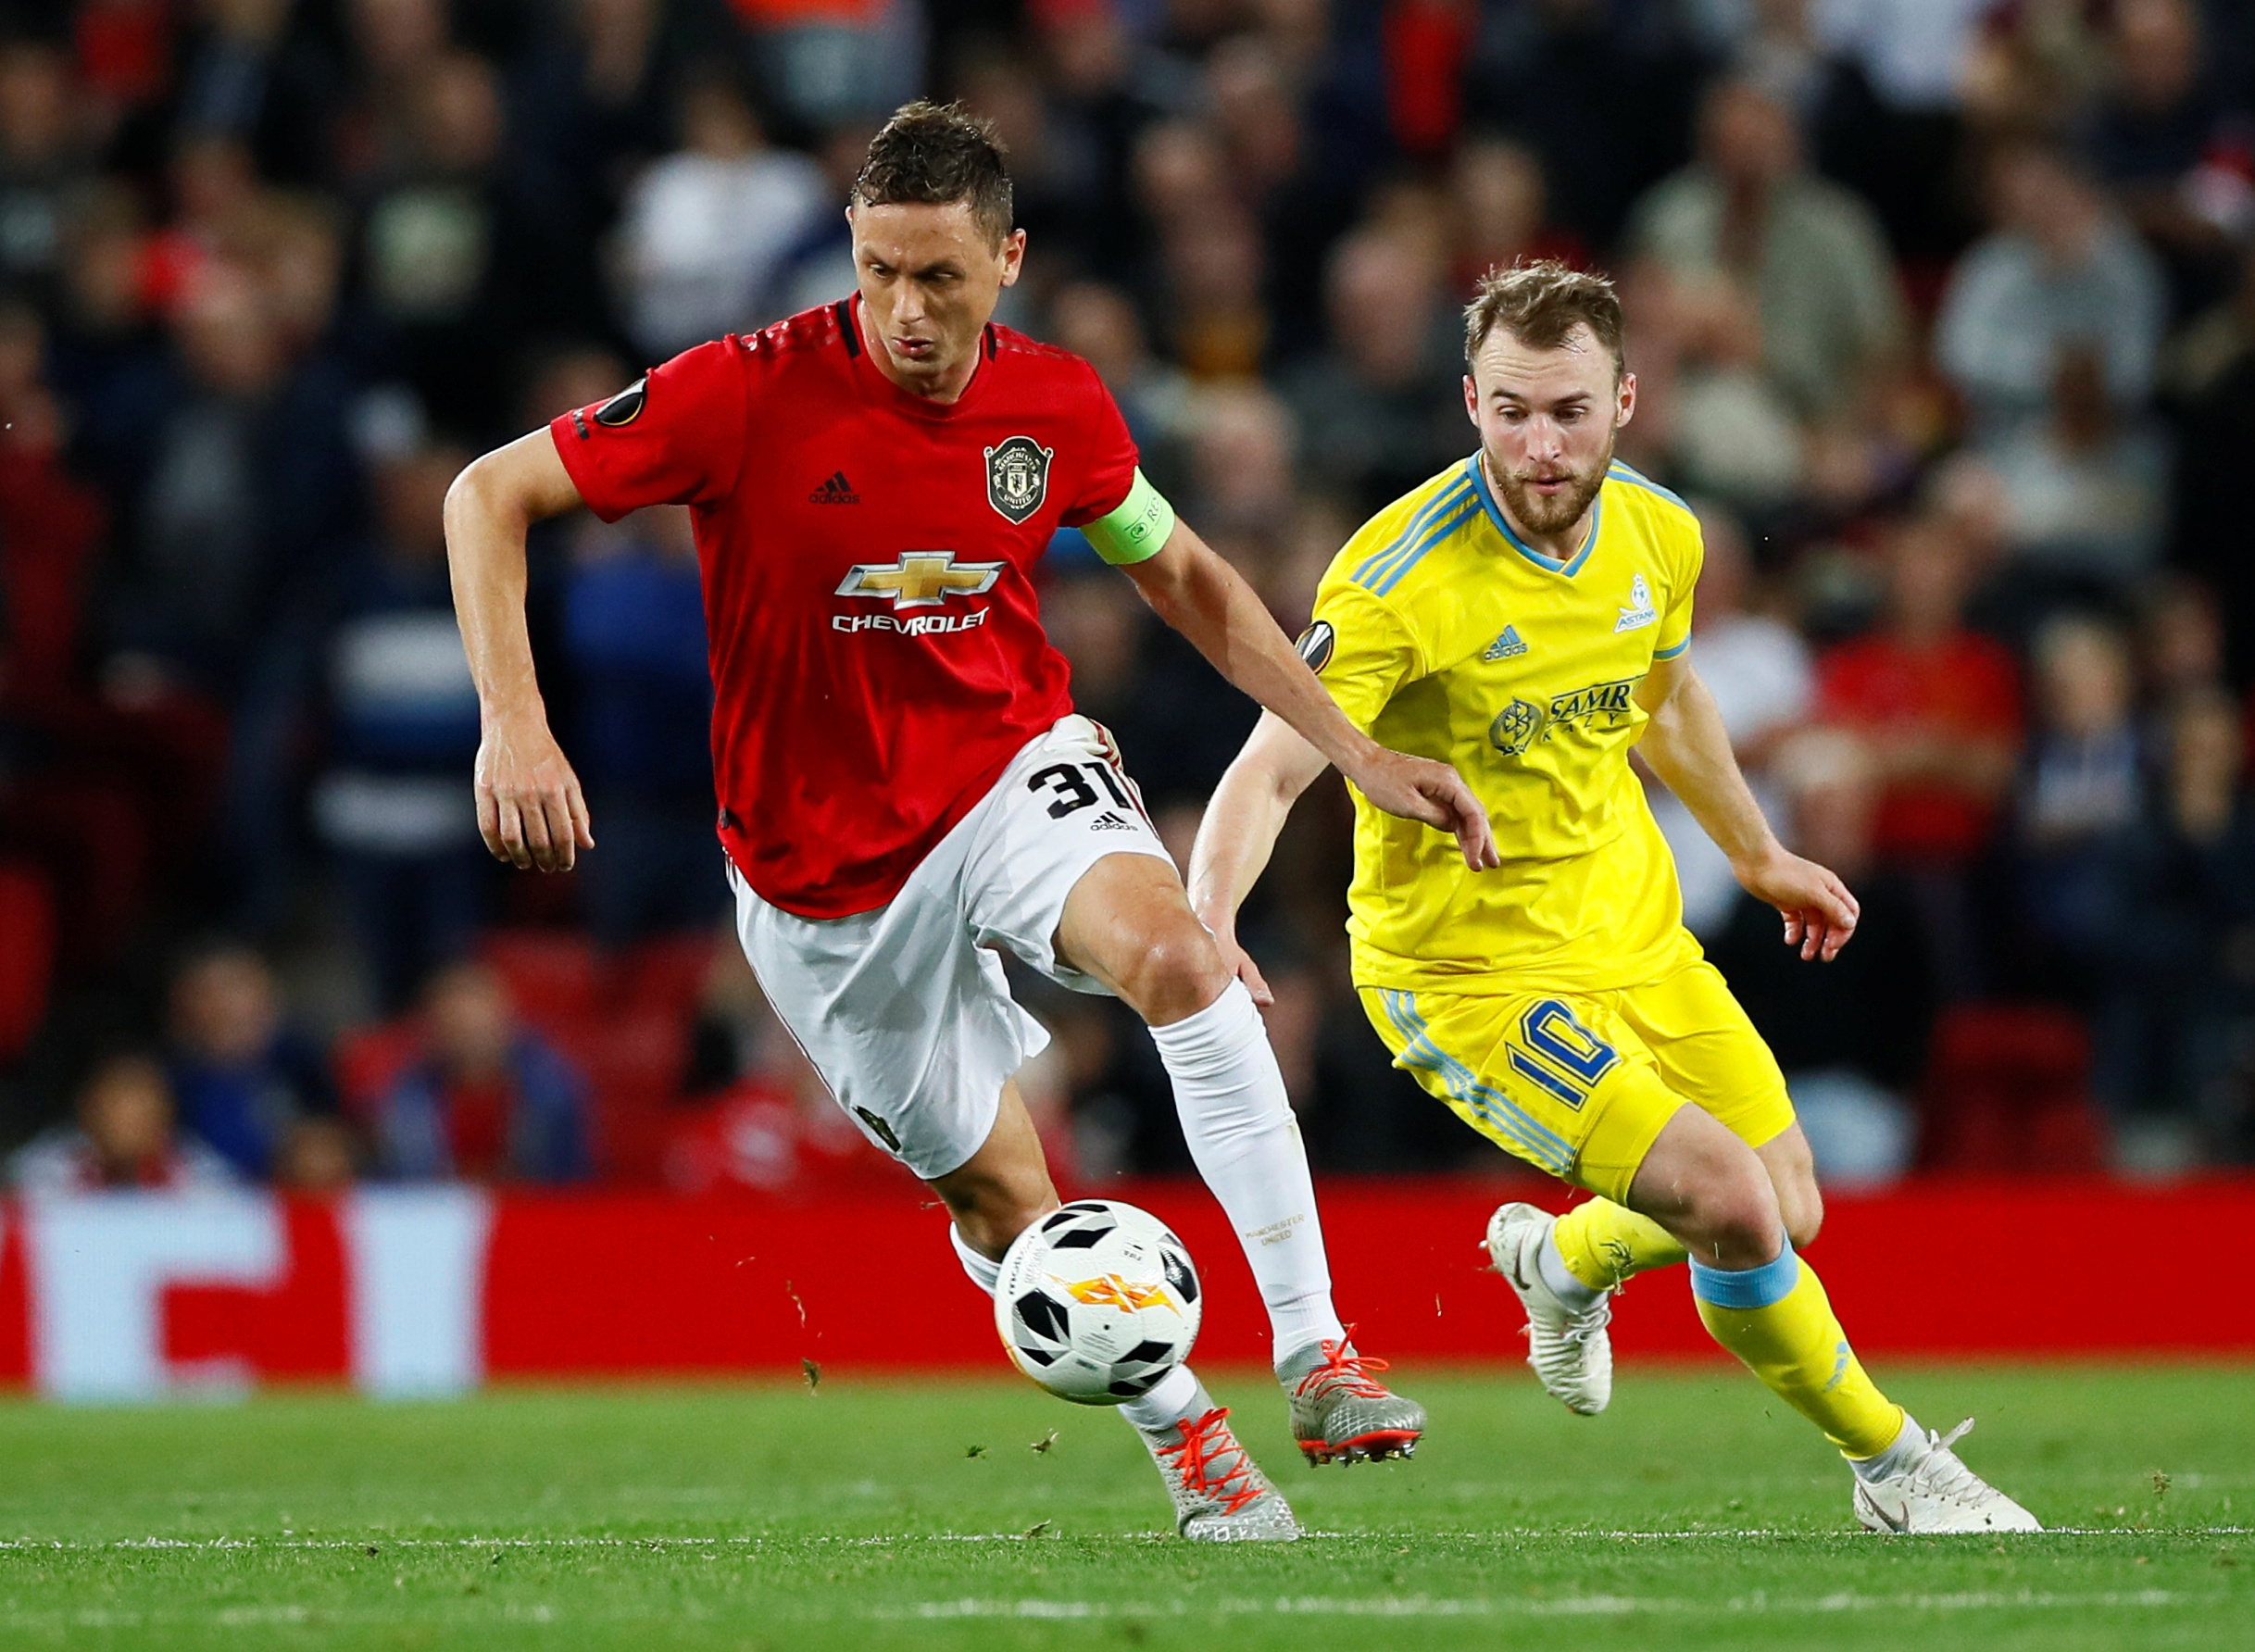 Want-away man Nemanja Matic plotting departure from Manchester United